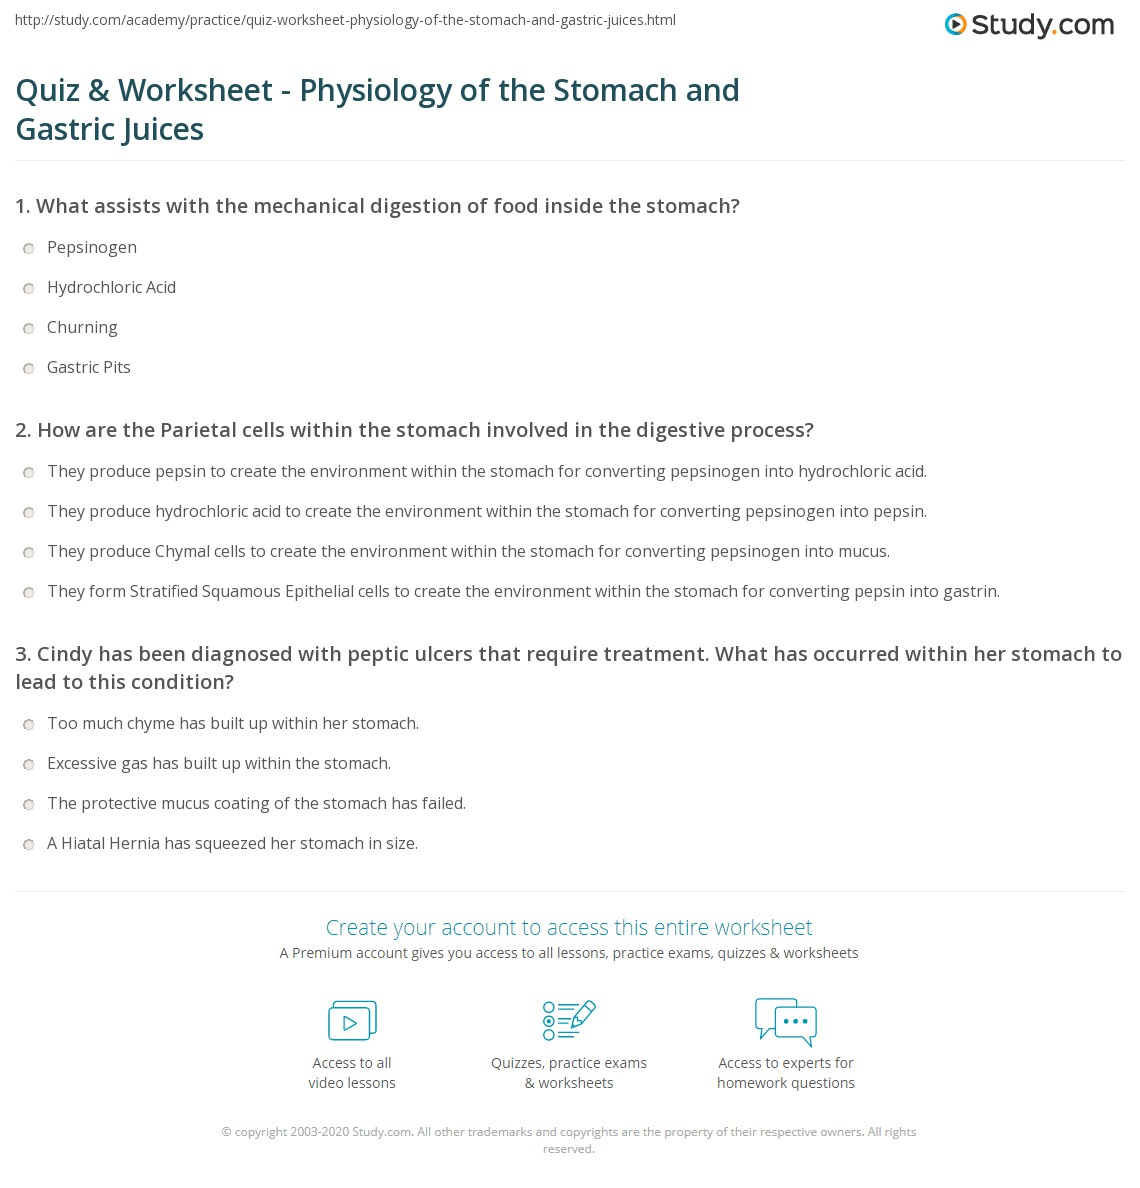 Quiz & Worksheet - Physiology of the Stomach and Gastric Juices ...